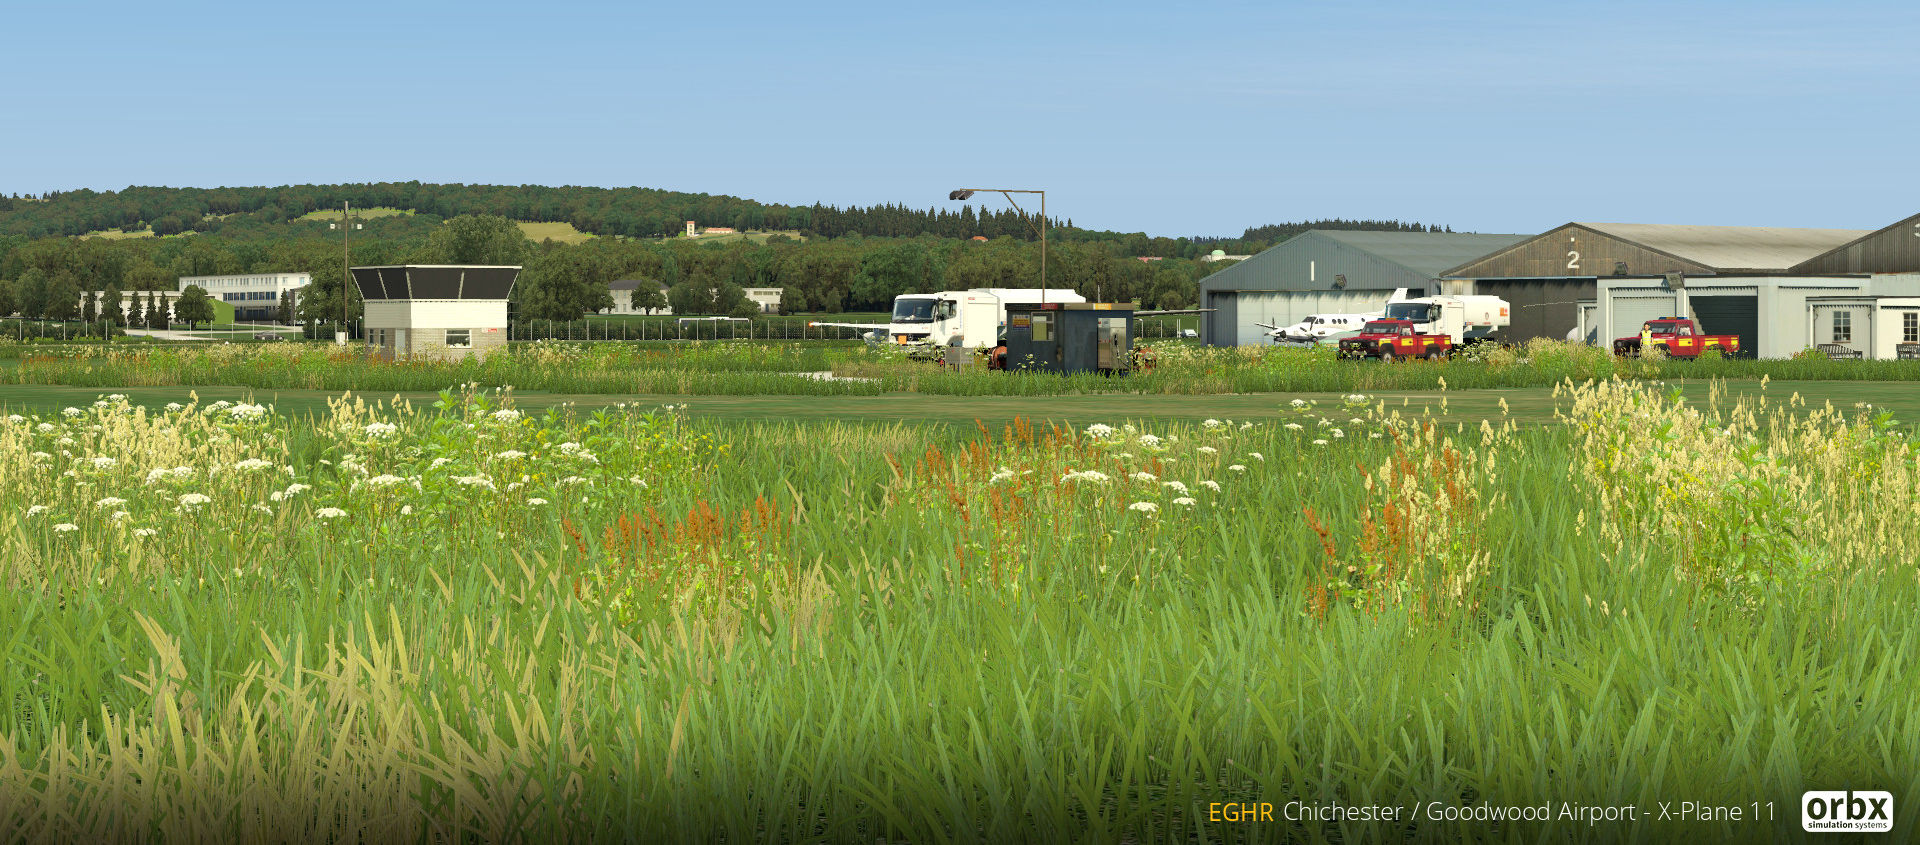 Chichester/Goodwood Airport Orbx X-Plane 11